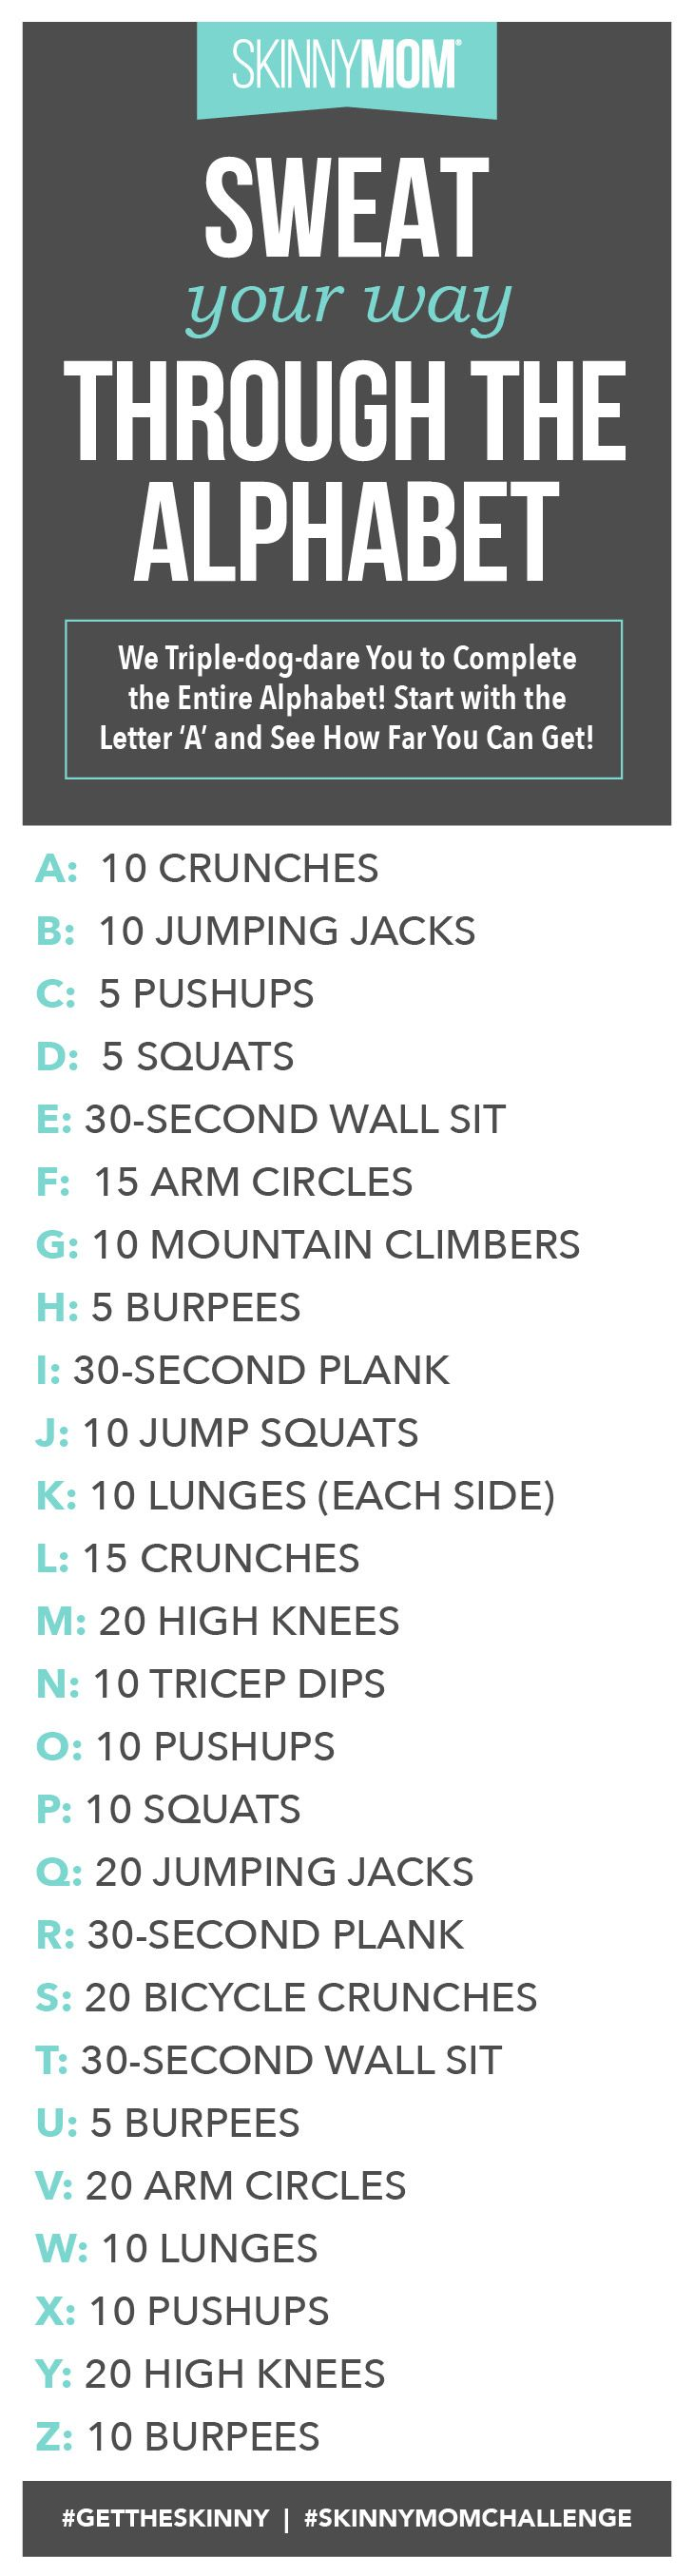 Workout Motivation: I have goals Damnit! Challenge to make it through the alphabet!